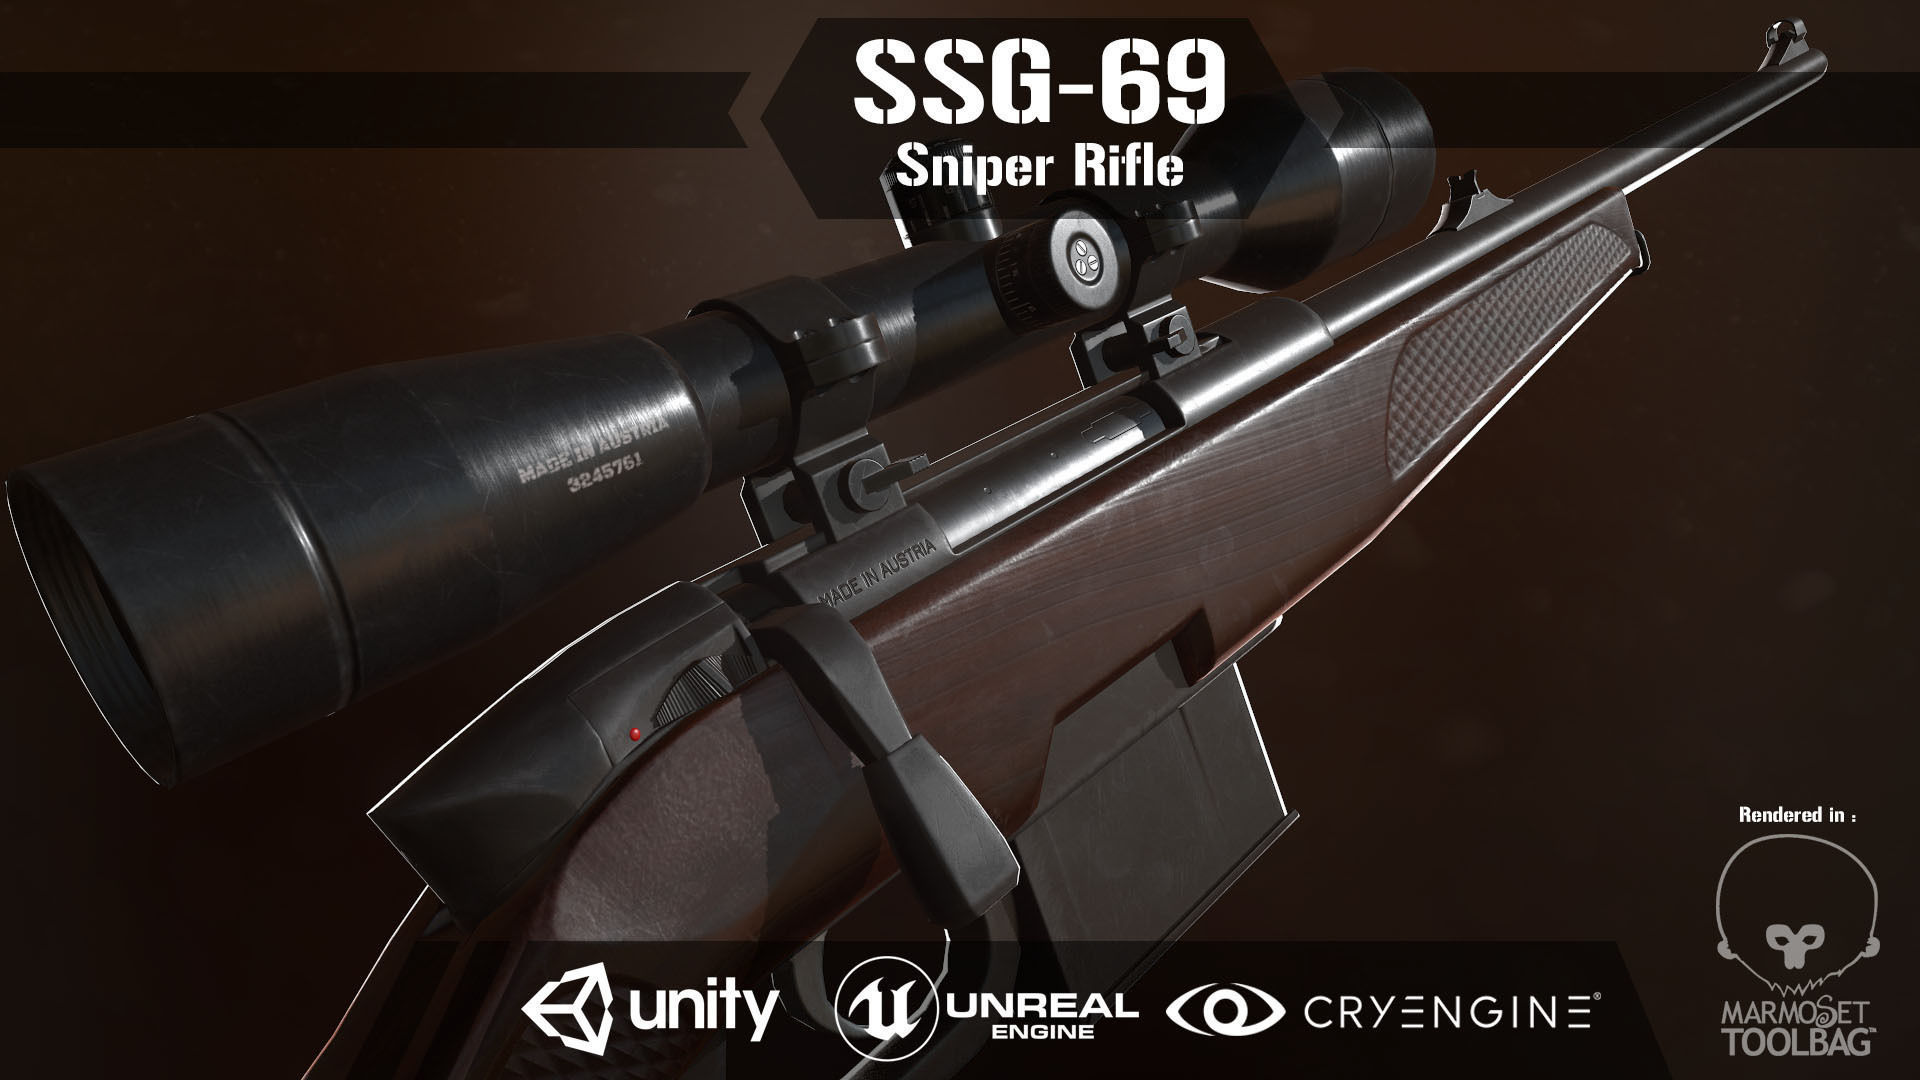 SSG 69 Sniper Rifle